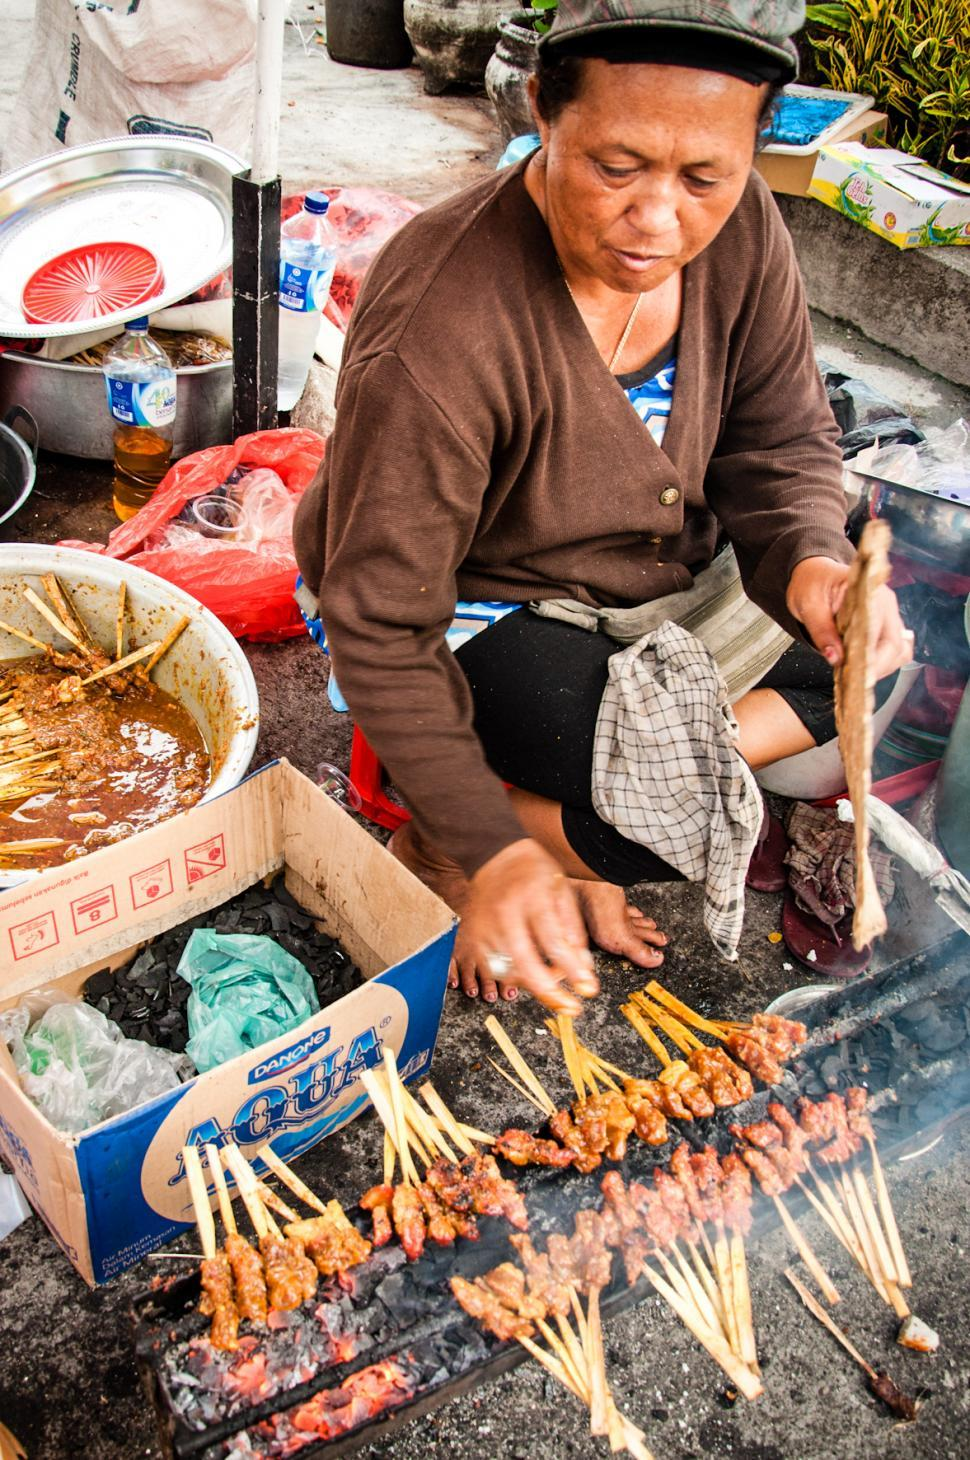 Download Free Stock Photo of Asian woman selling sate on the street